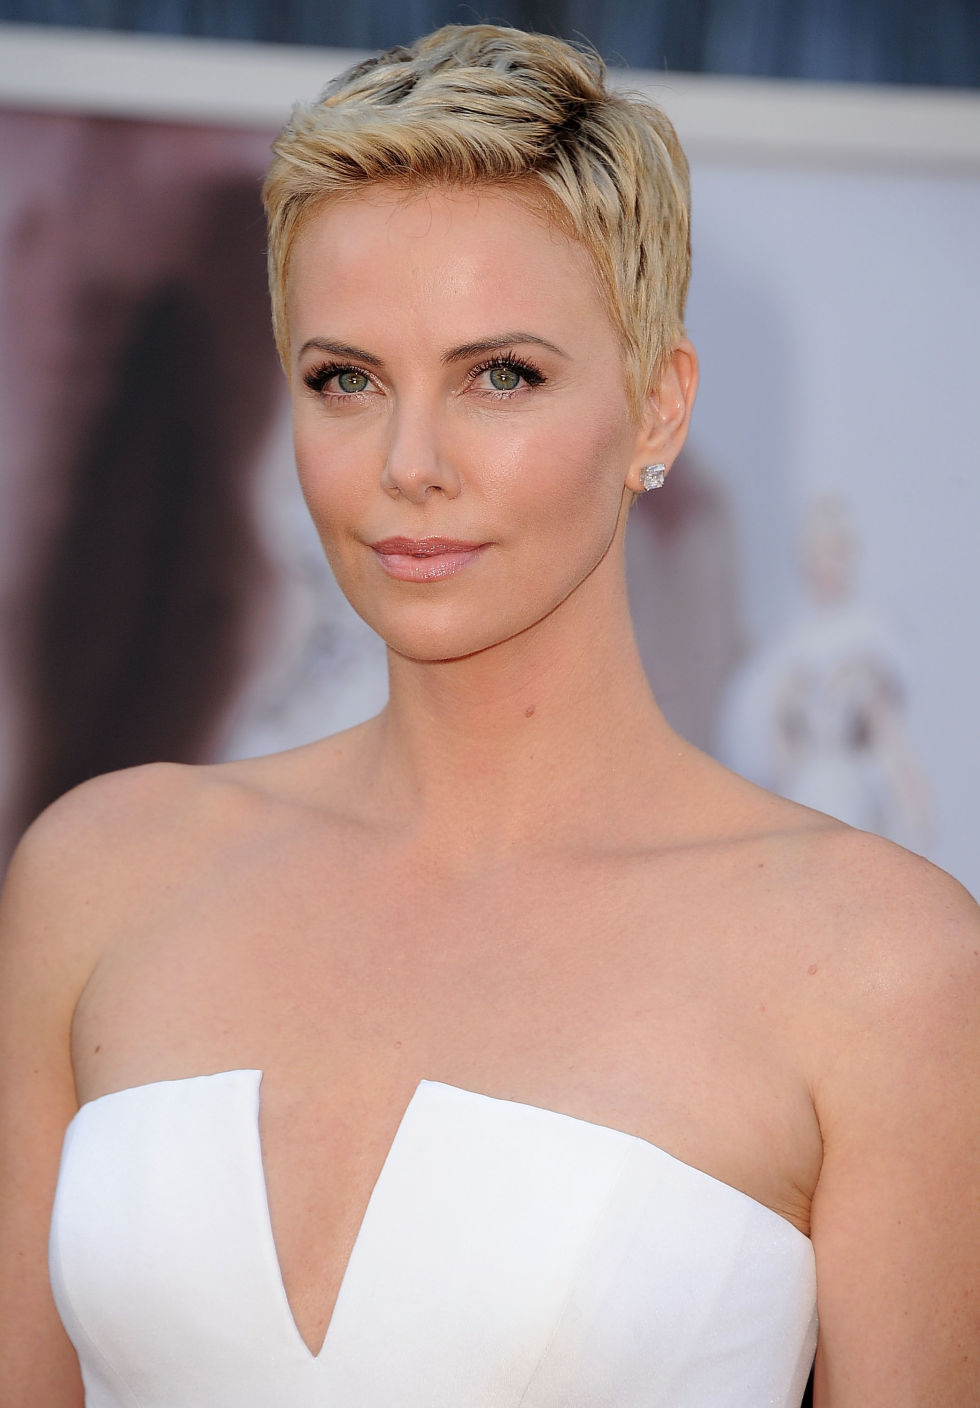 Outstanding 35 Best Pixie Cuts On Celebrities Chic Pixie Hairstyle Ideas For Short Hairstyles For Black Women Fulllsitofus